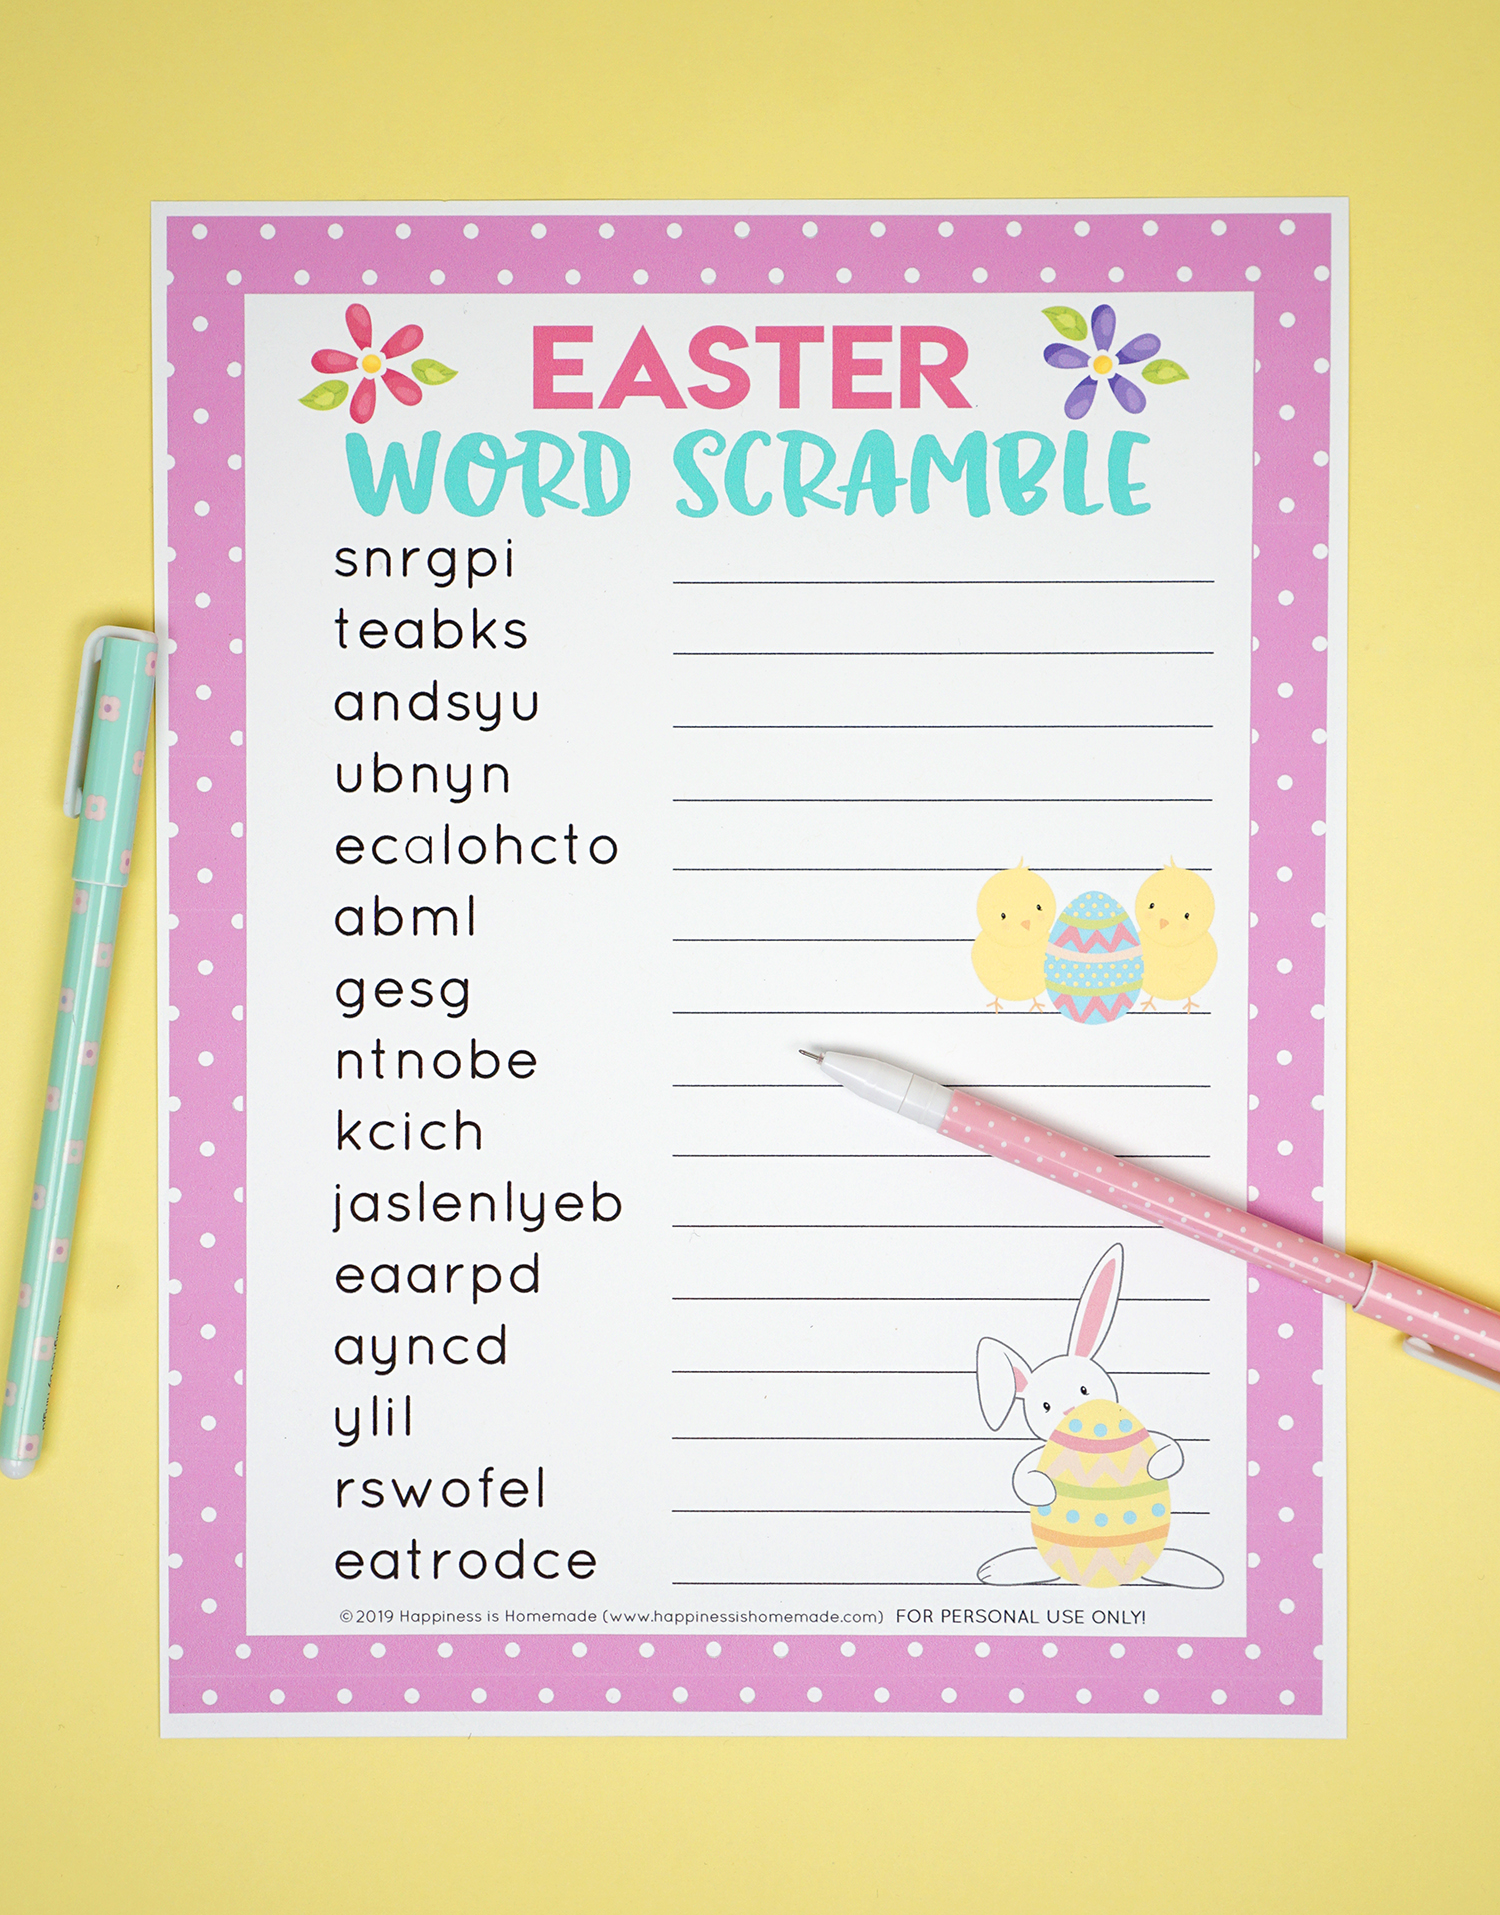 image relating to Word Games for Seniors Printable named Easter Term Scramble Printable - Pleasure is Handmade